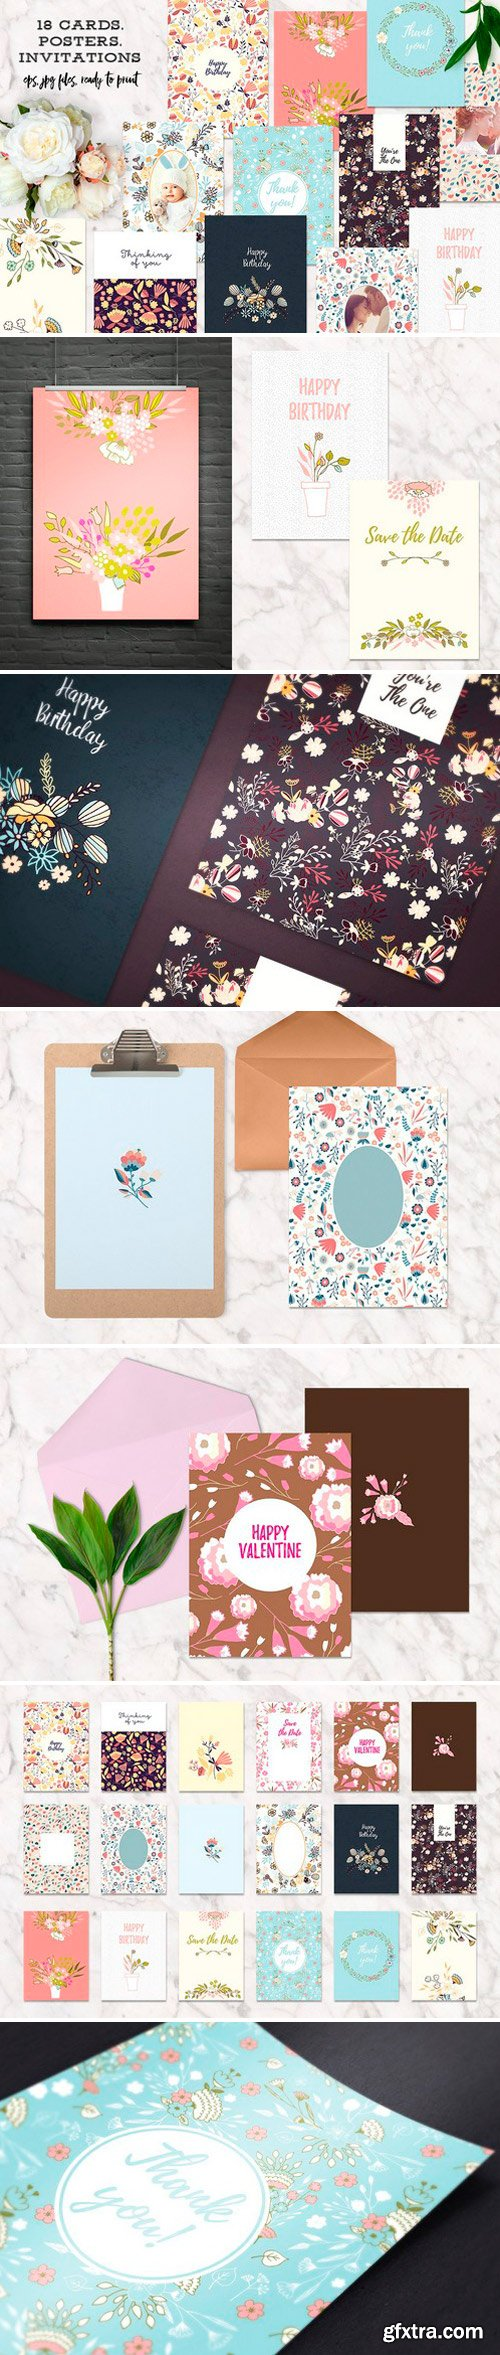 CM - 18 Cards, Invitations or Posters 902899